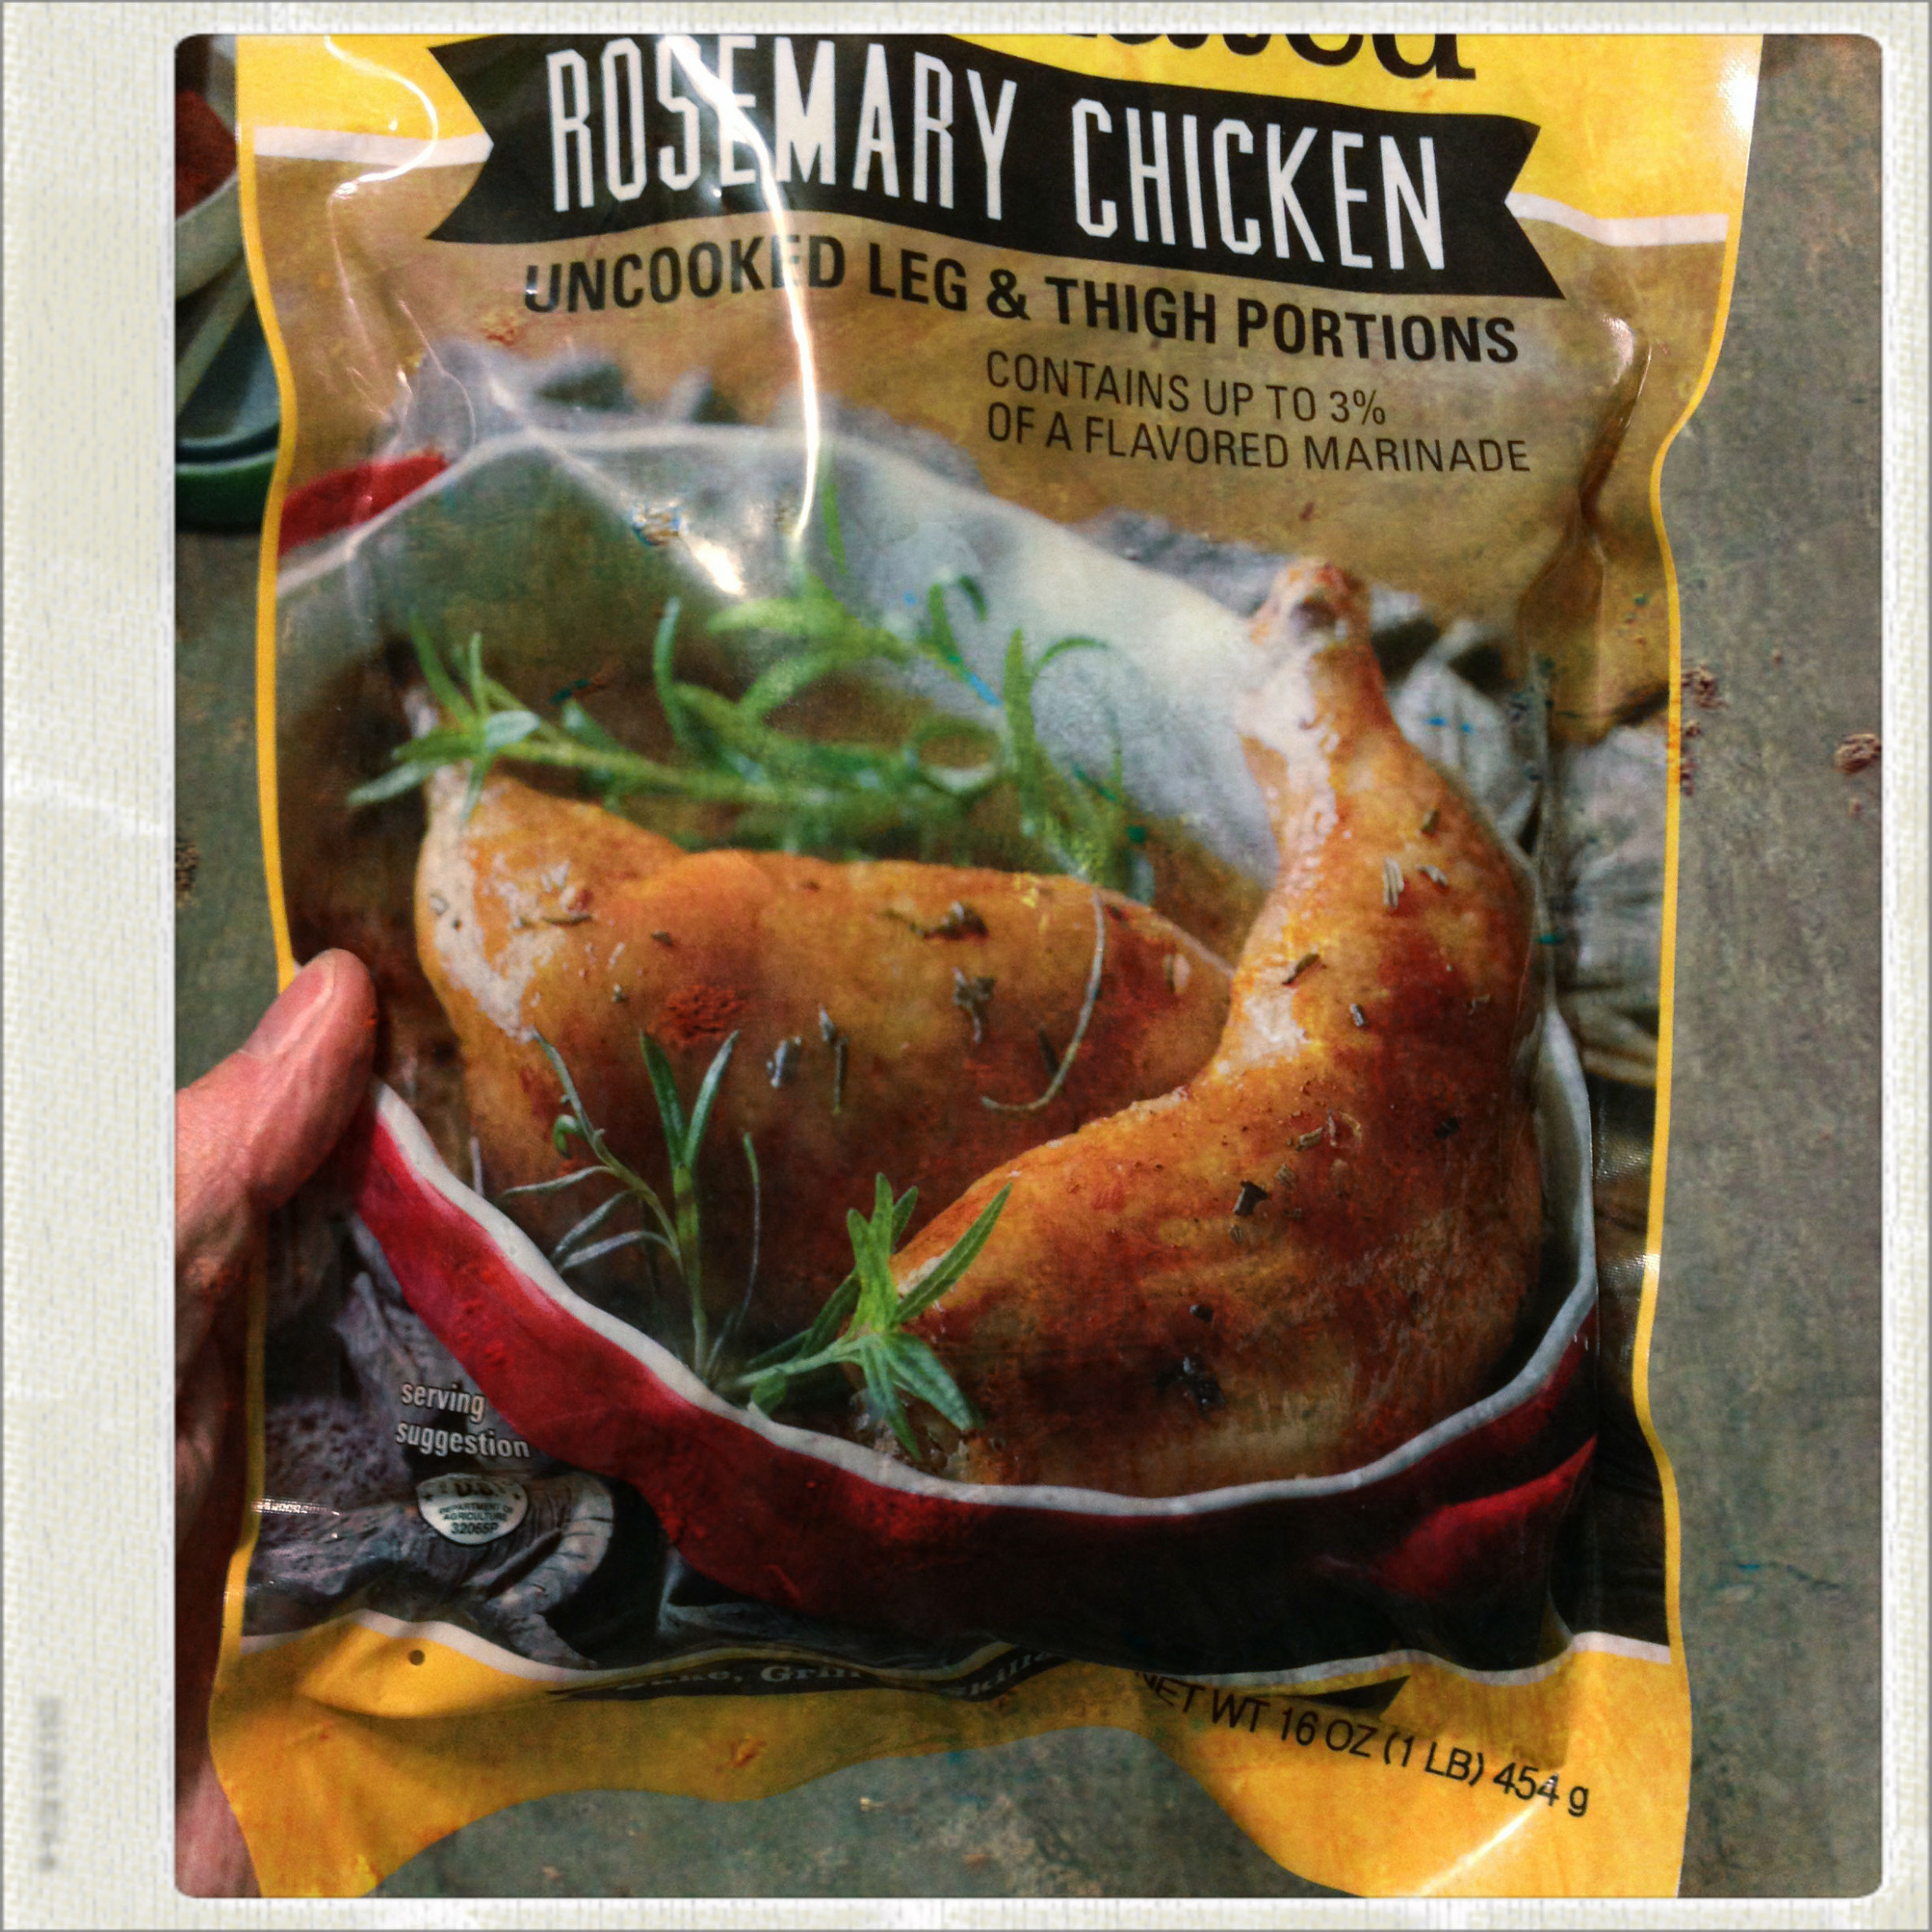 Quick Dinner Ideas: Rosemary Chicken with Sides   Life ..